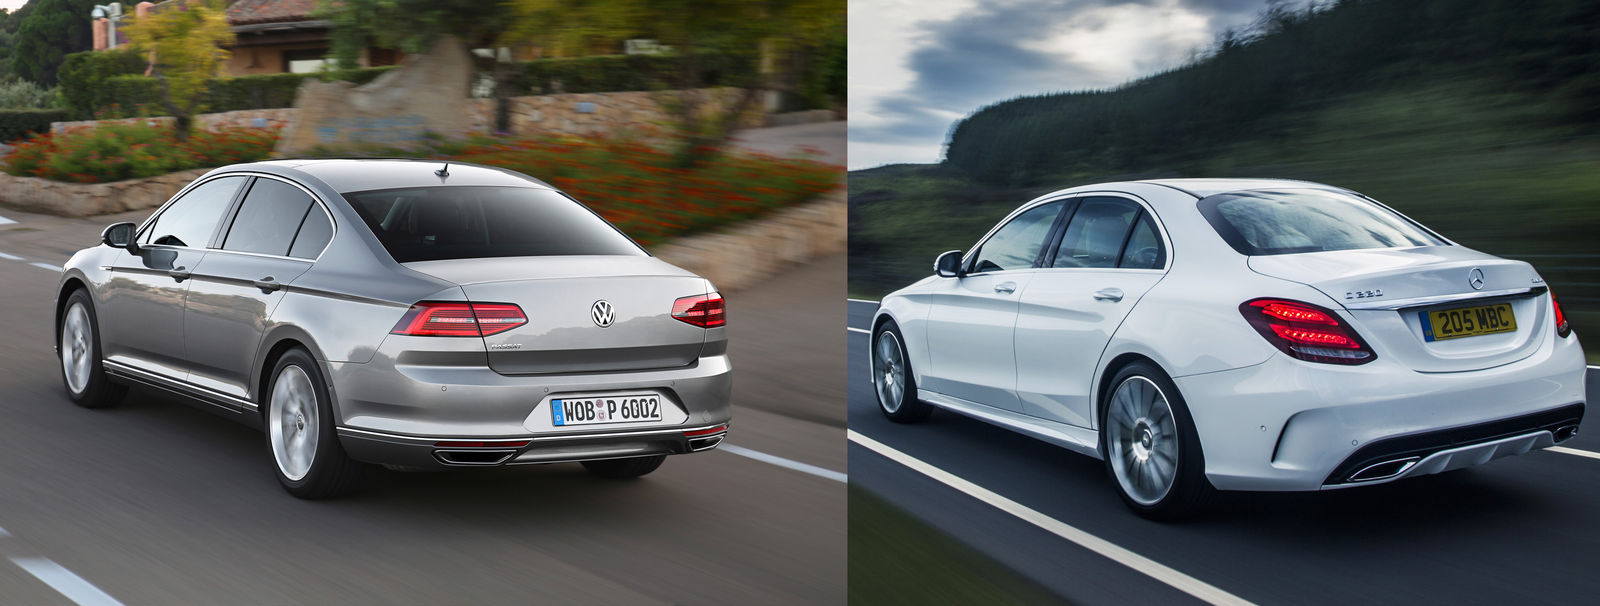 2015 volkswagen passat vs mercedes c-class – side-by-side uk